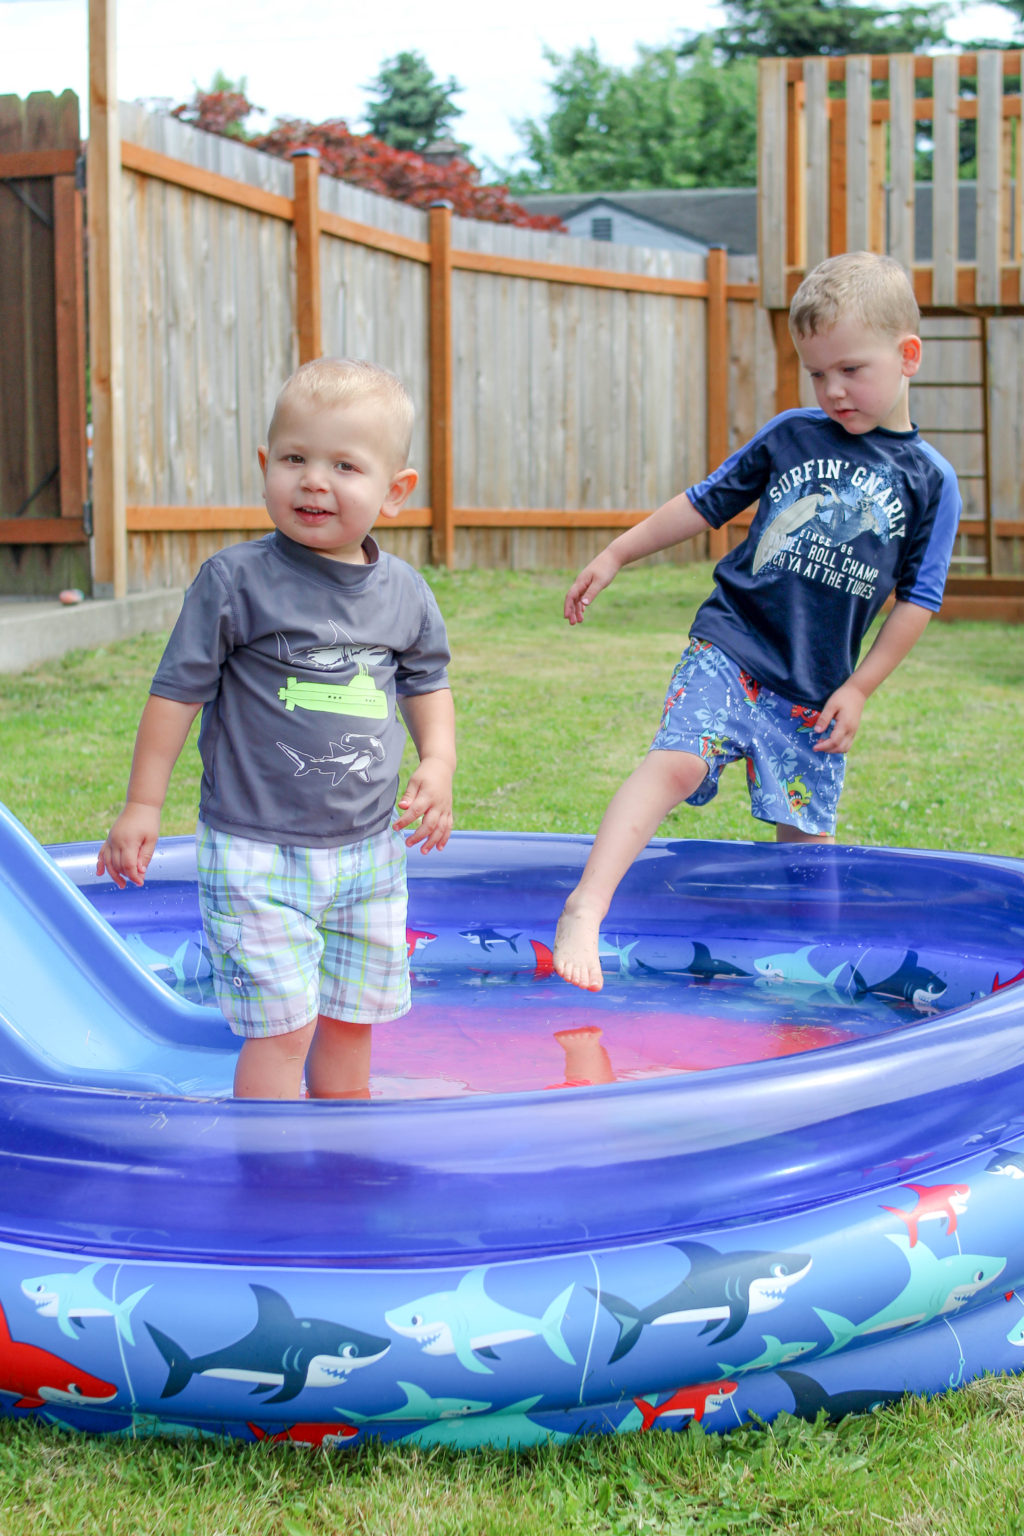 Toddler boy standing in wading pool while preschool boy steps into it